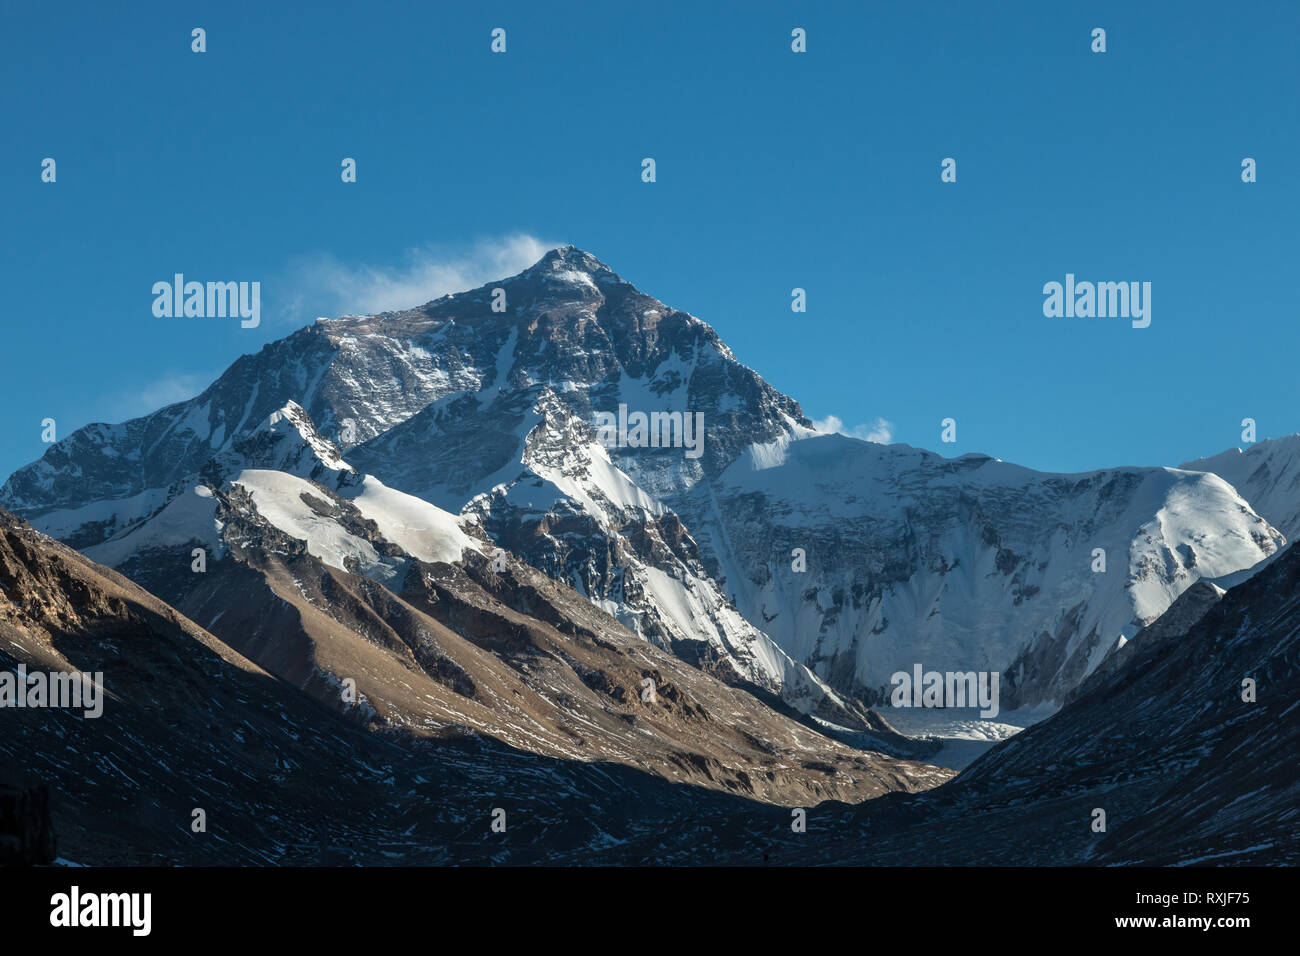 View of Mountain Everest's north ride, taken from base camp in Tibet. - Stock Image